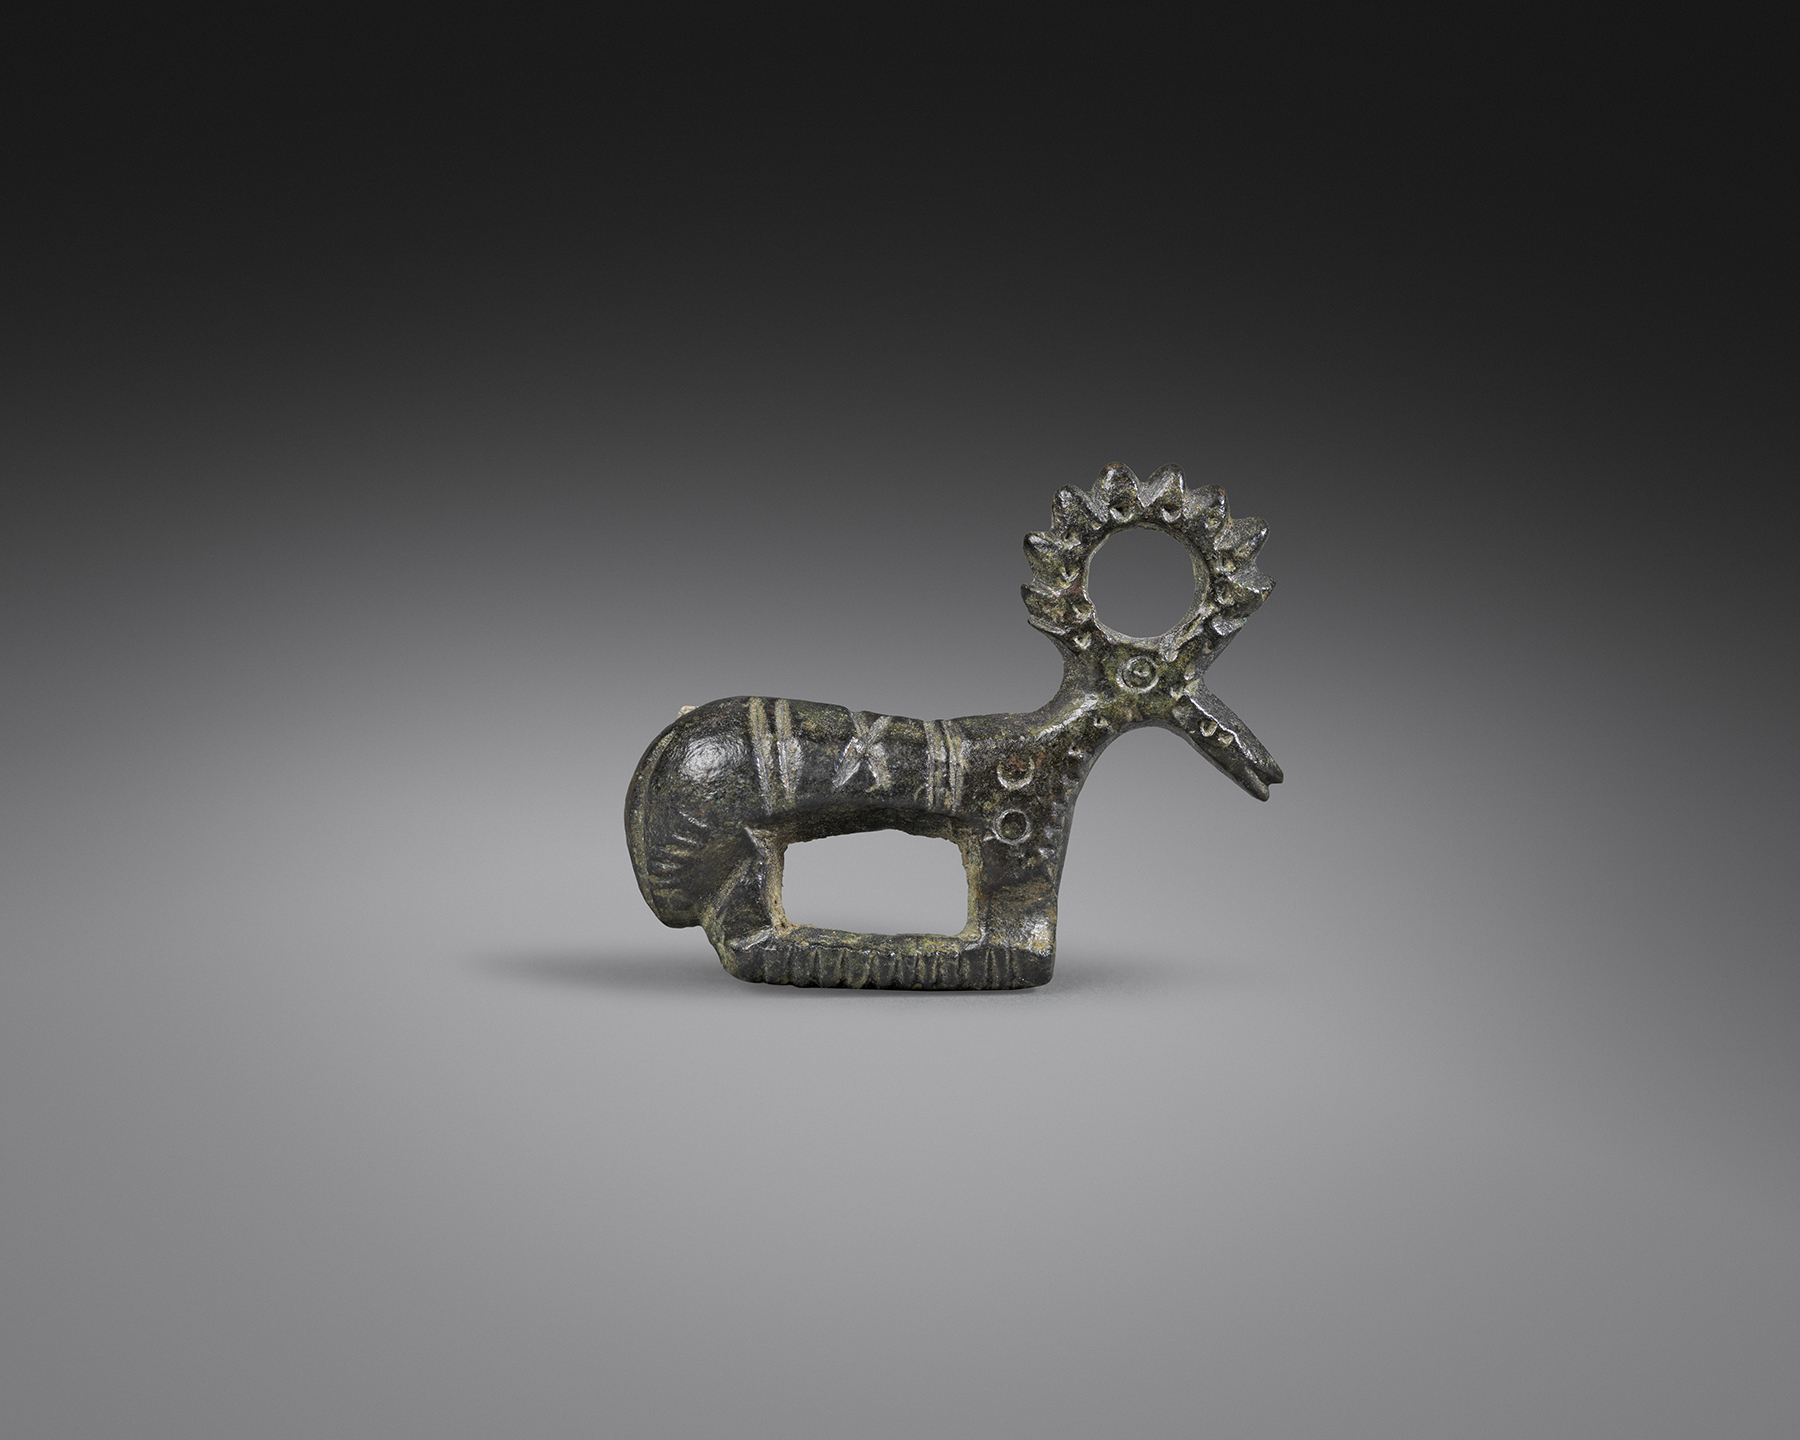 Visigothic Fibula in the Form of a Stag , 4th - 6th century C.E., Bronze, Length 3.6 cm, Courtesy Rupert Wace Ancient Art, London